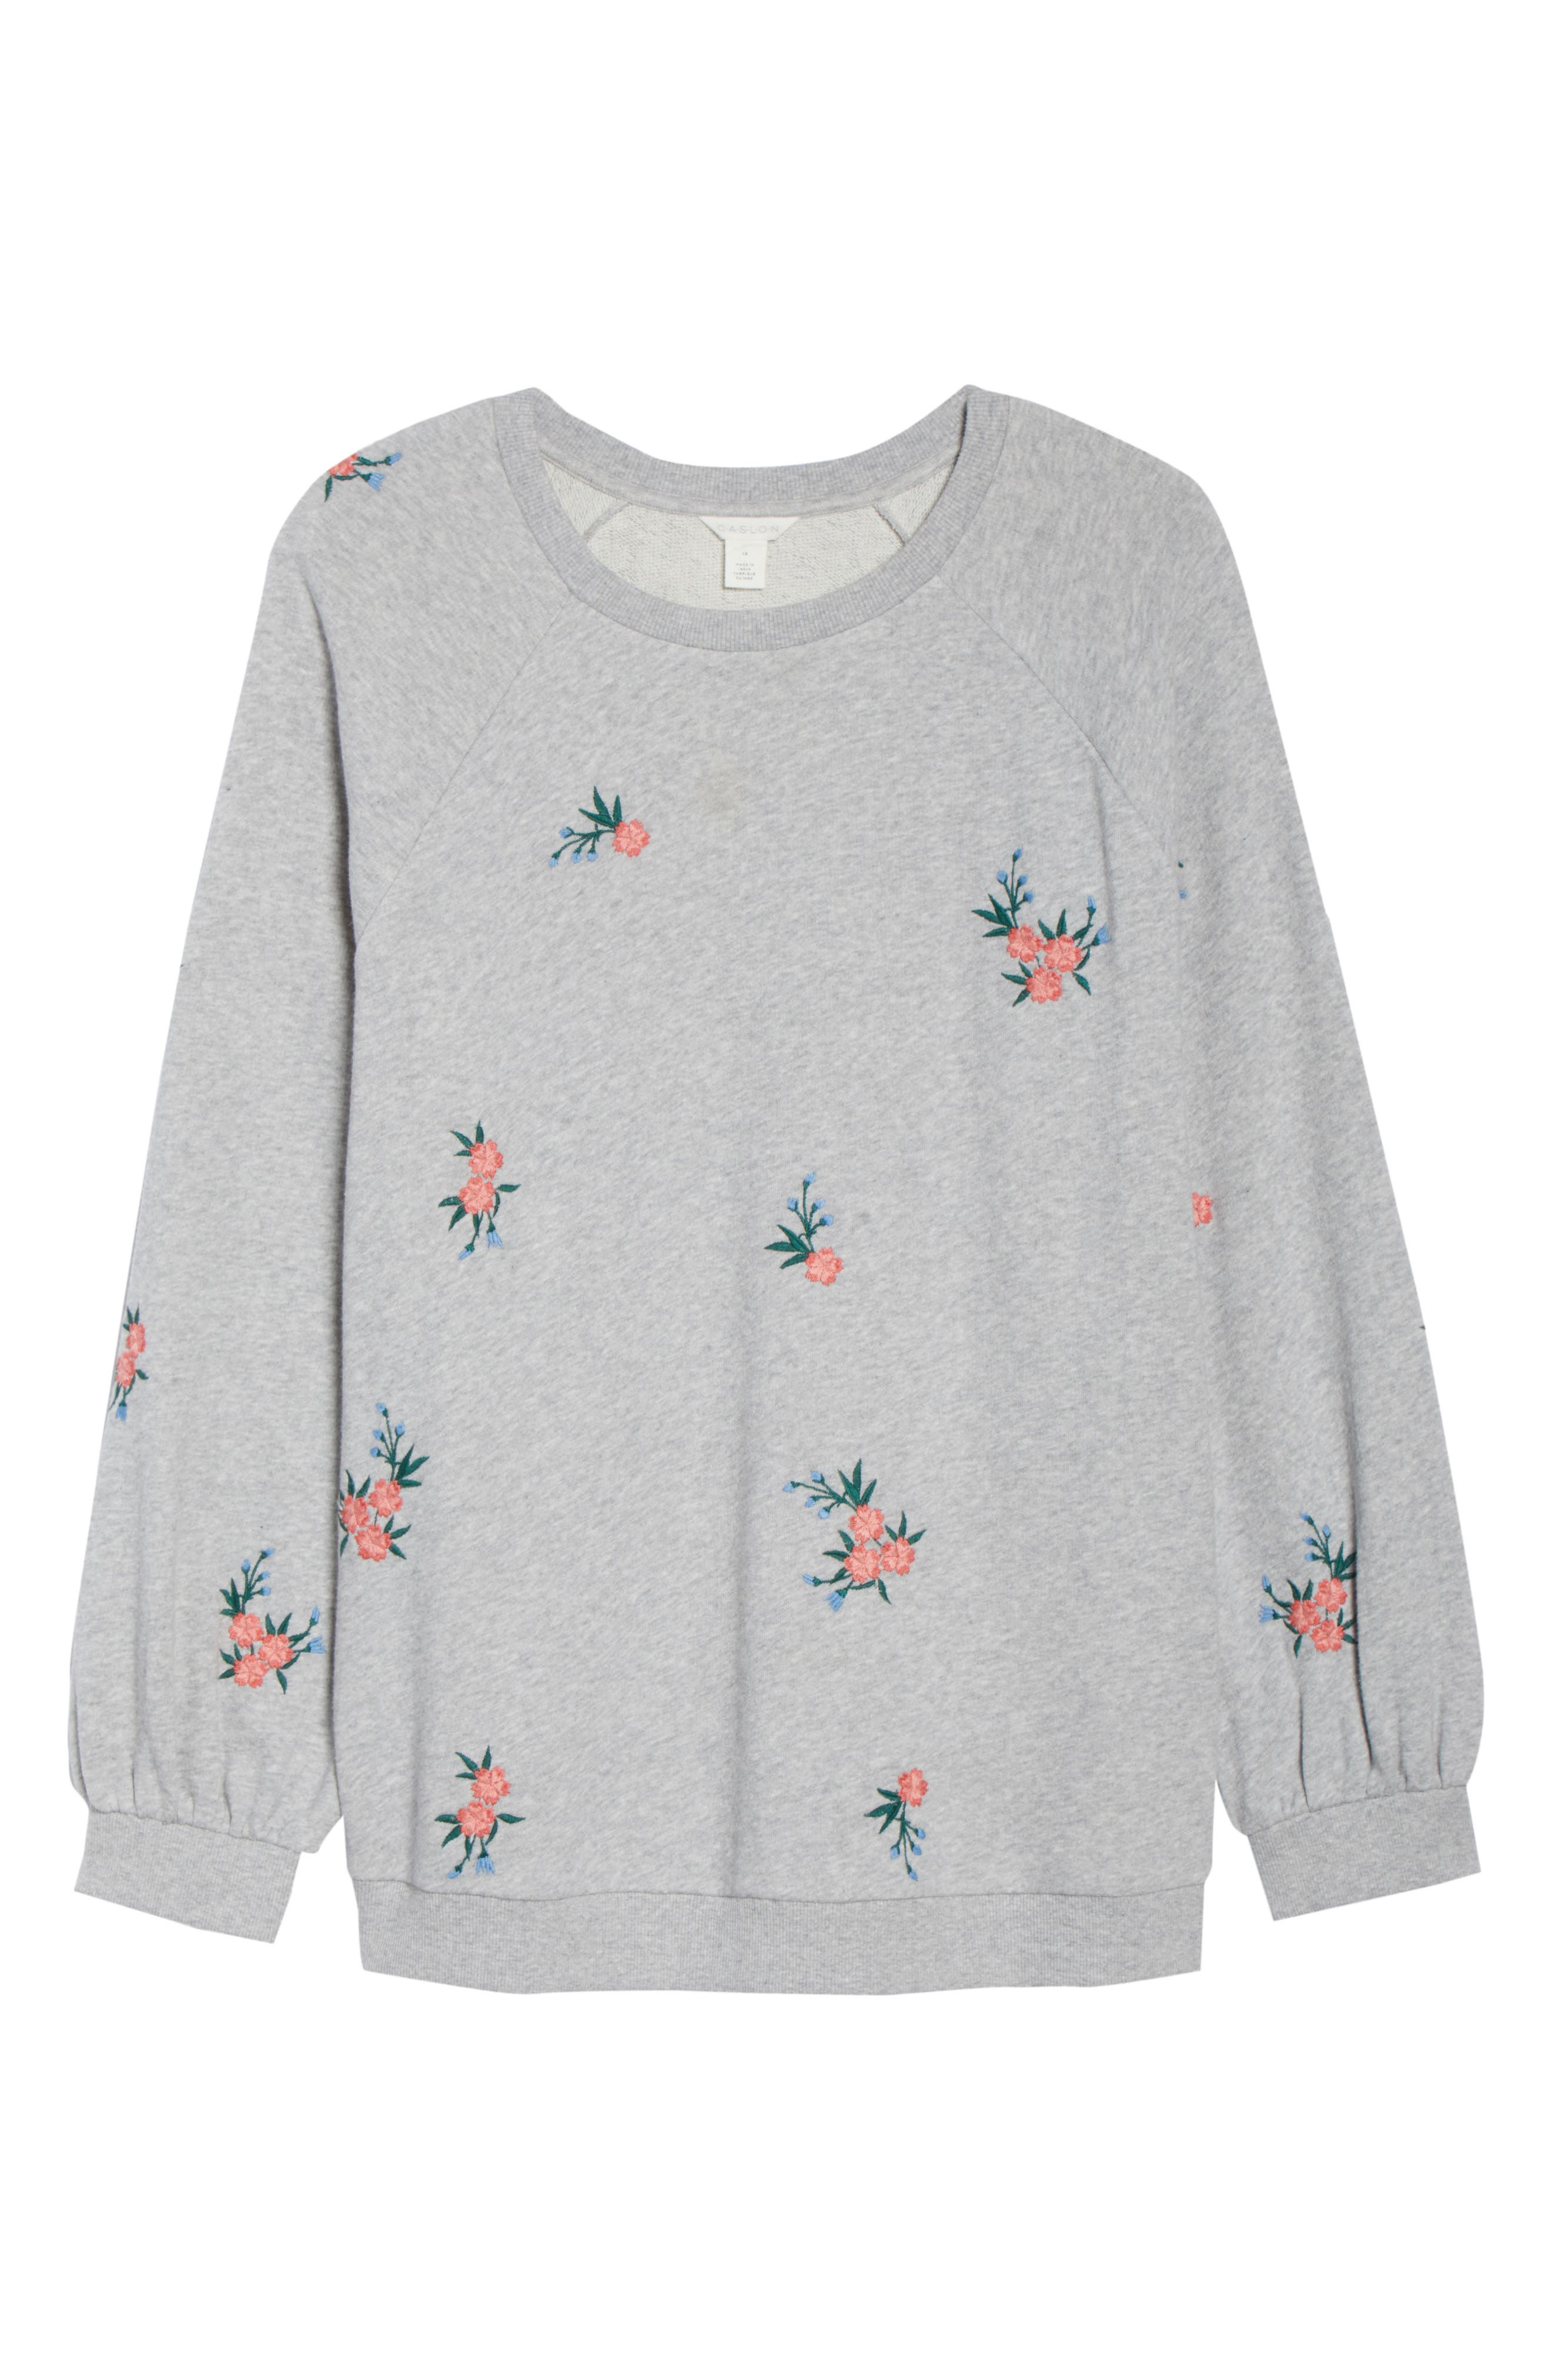 Embroidered Cotton Sweatshirt,                             Alternate thumbnail 6, color,                             030